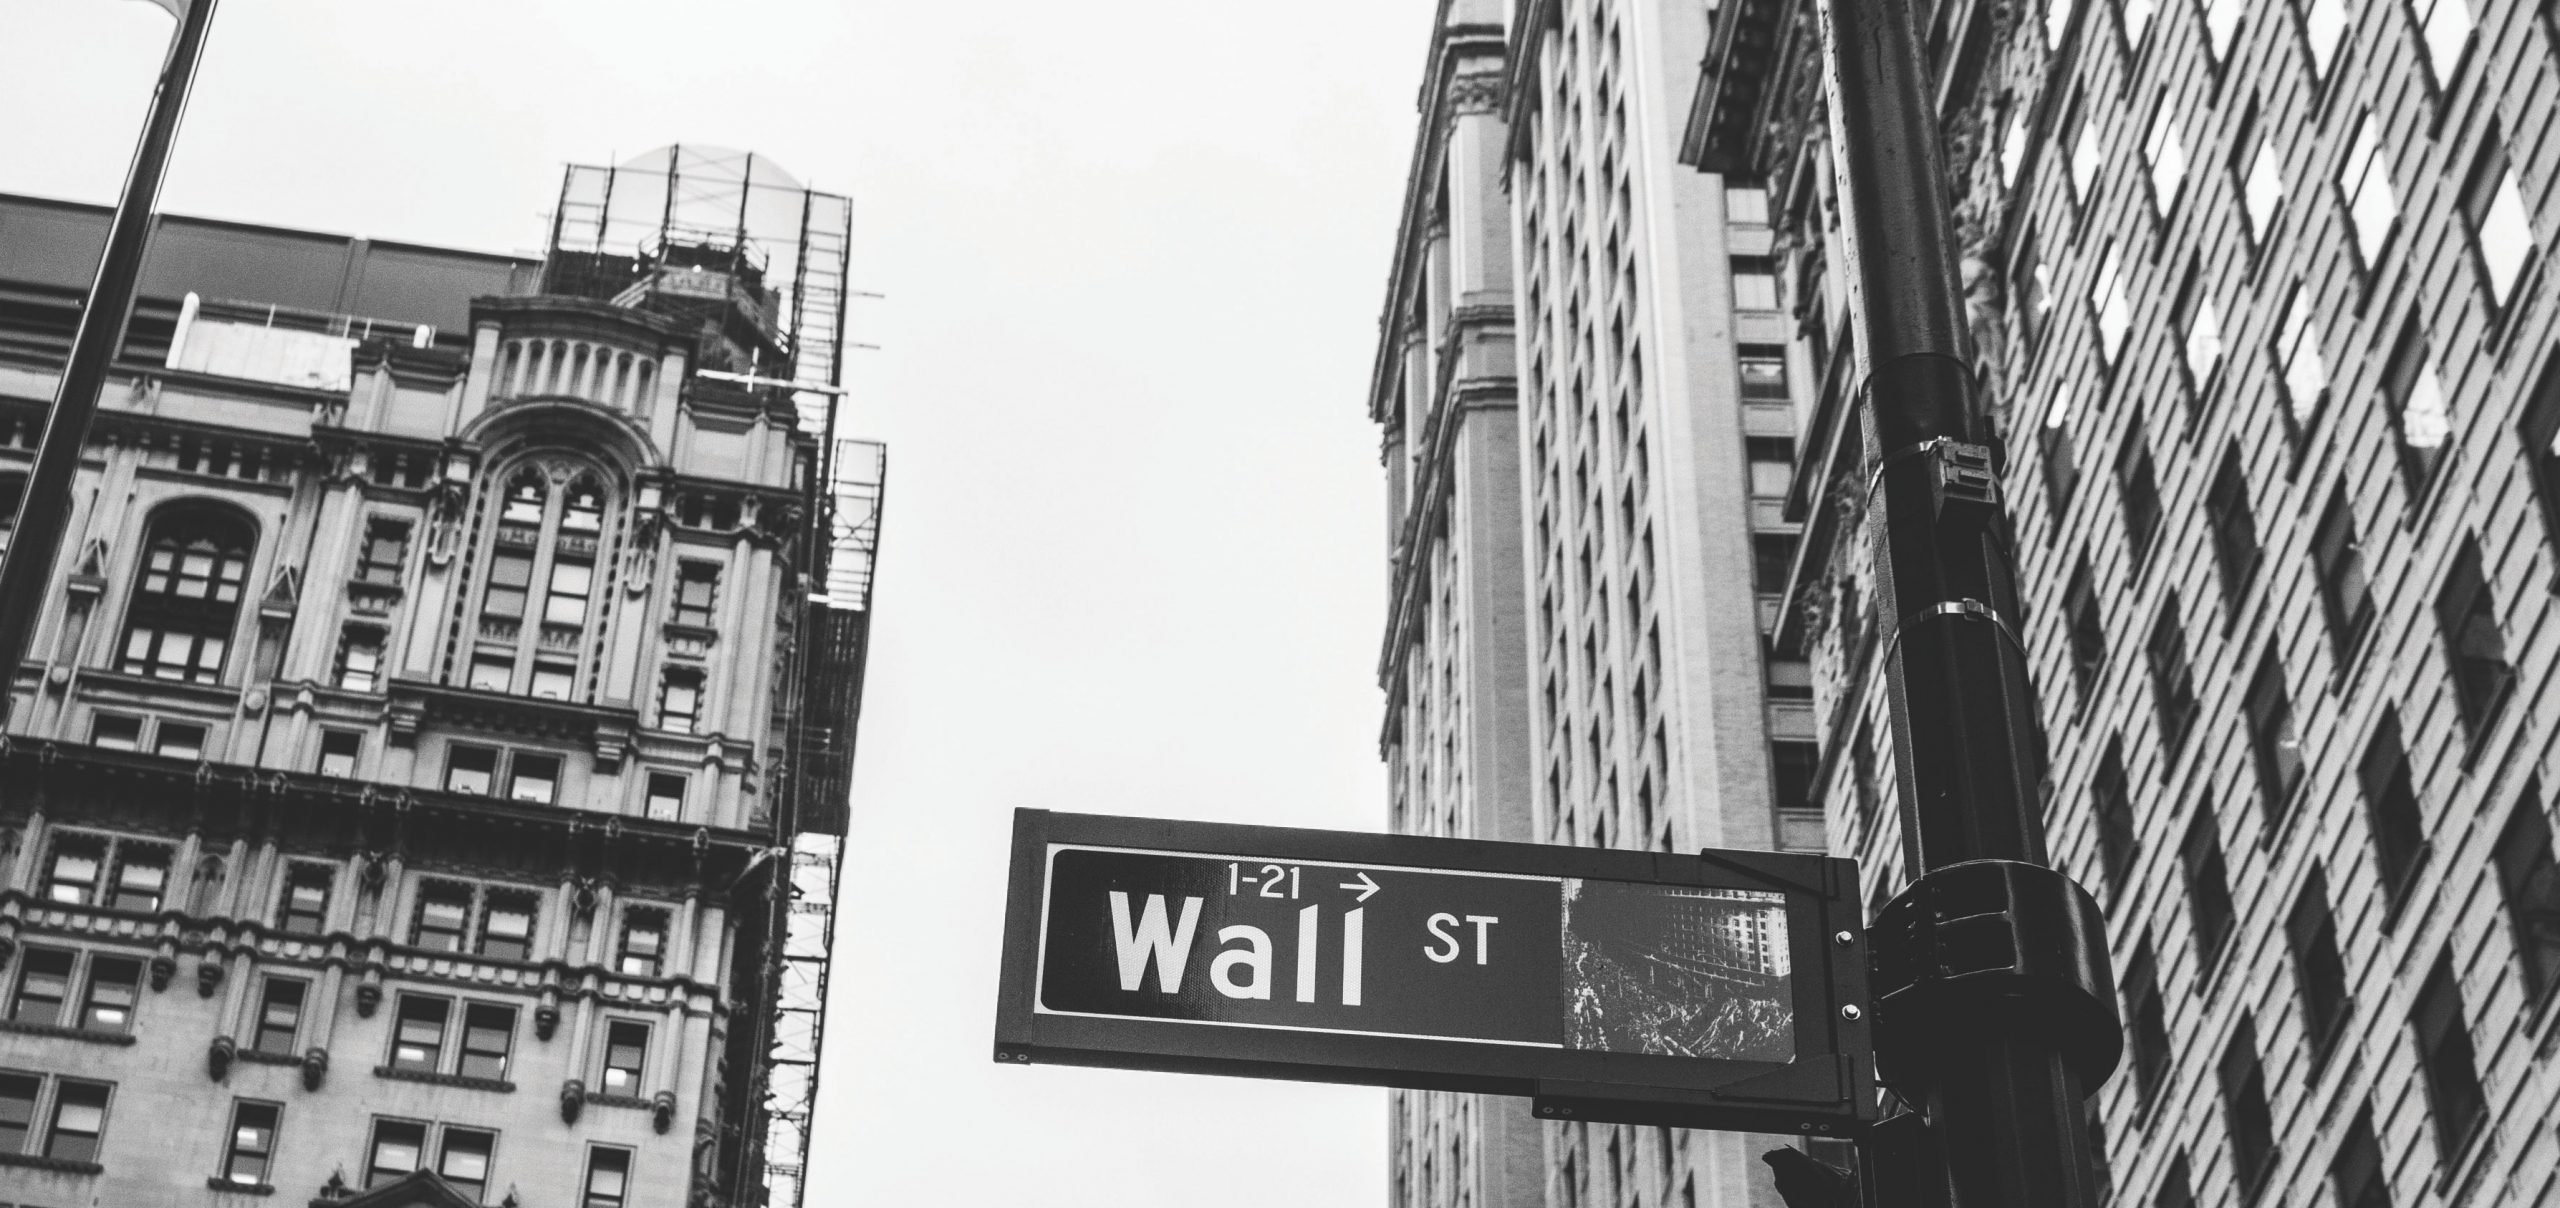 Sign Of Wall Street In New York City